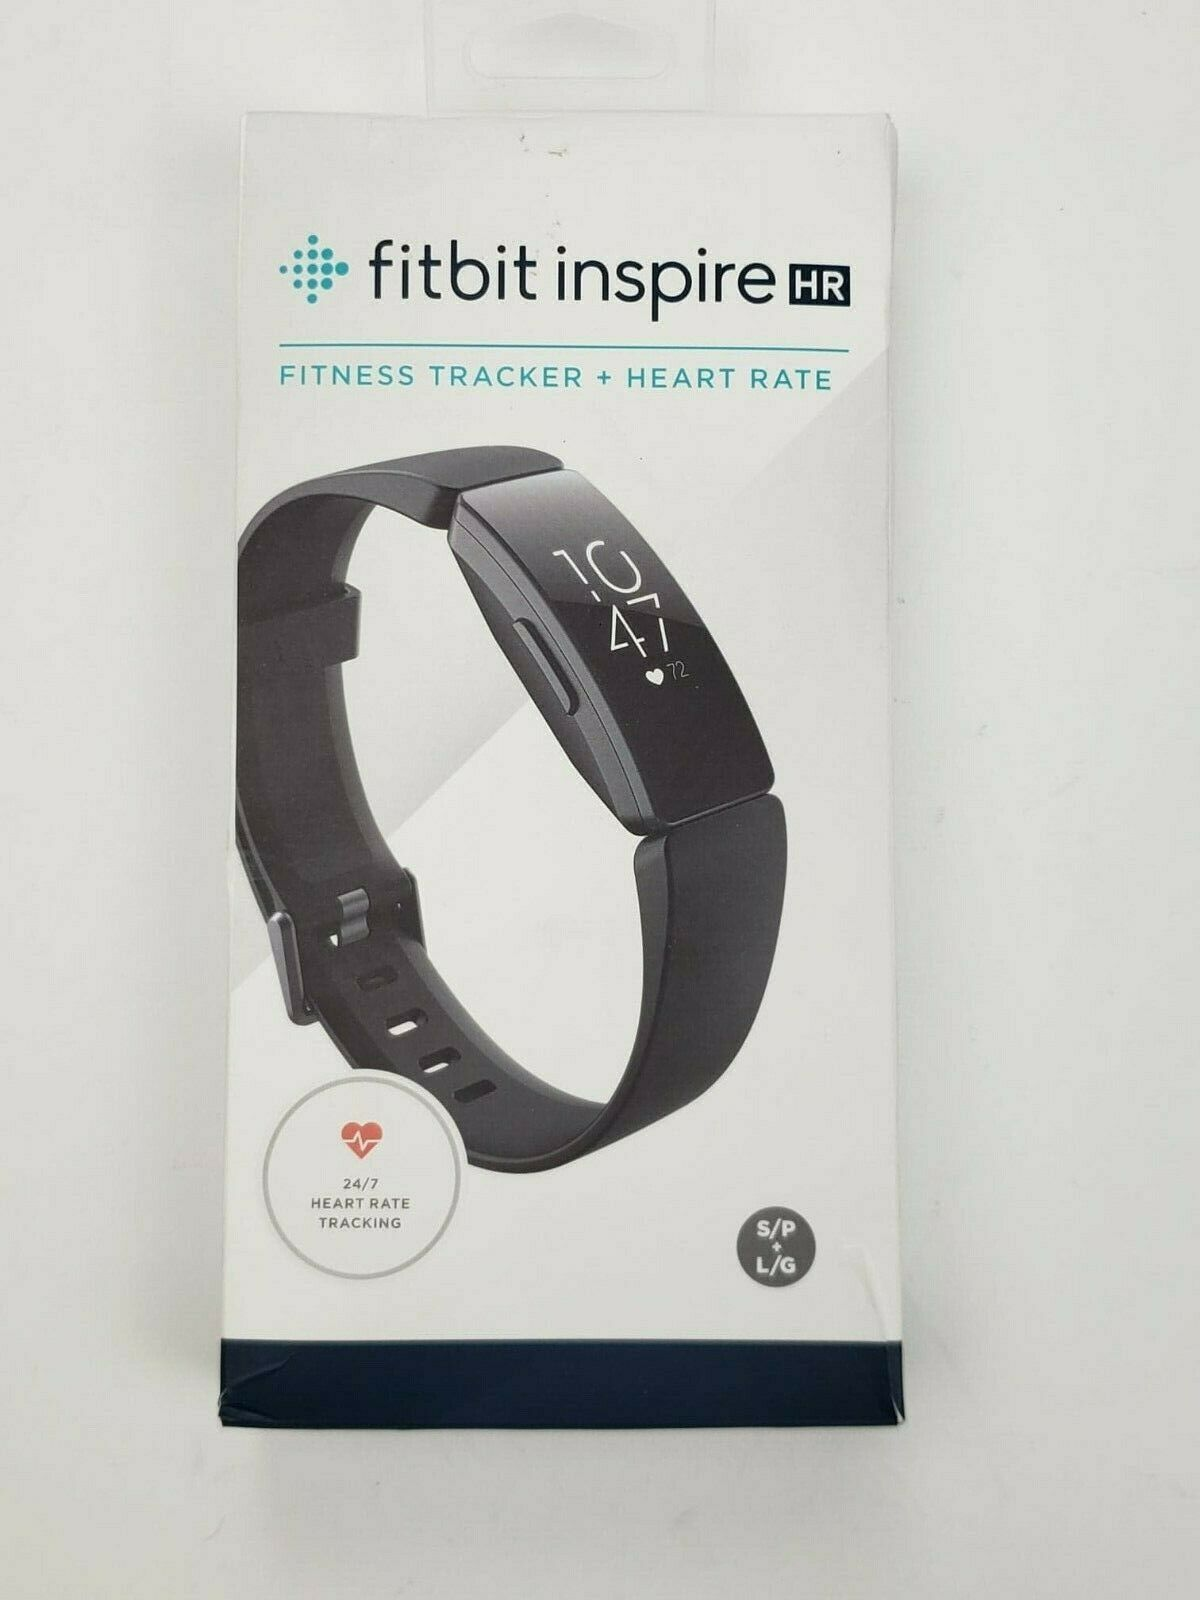 Fitbit, Inspire HR Fitness Tracker & Heart Rate Monitor, Black Case & Wristband black case fitness heart inspire rate tracker wristband